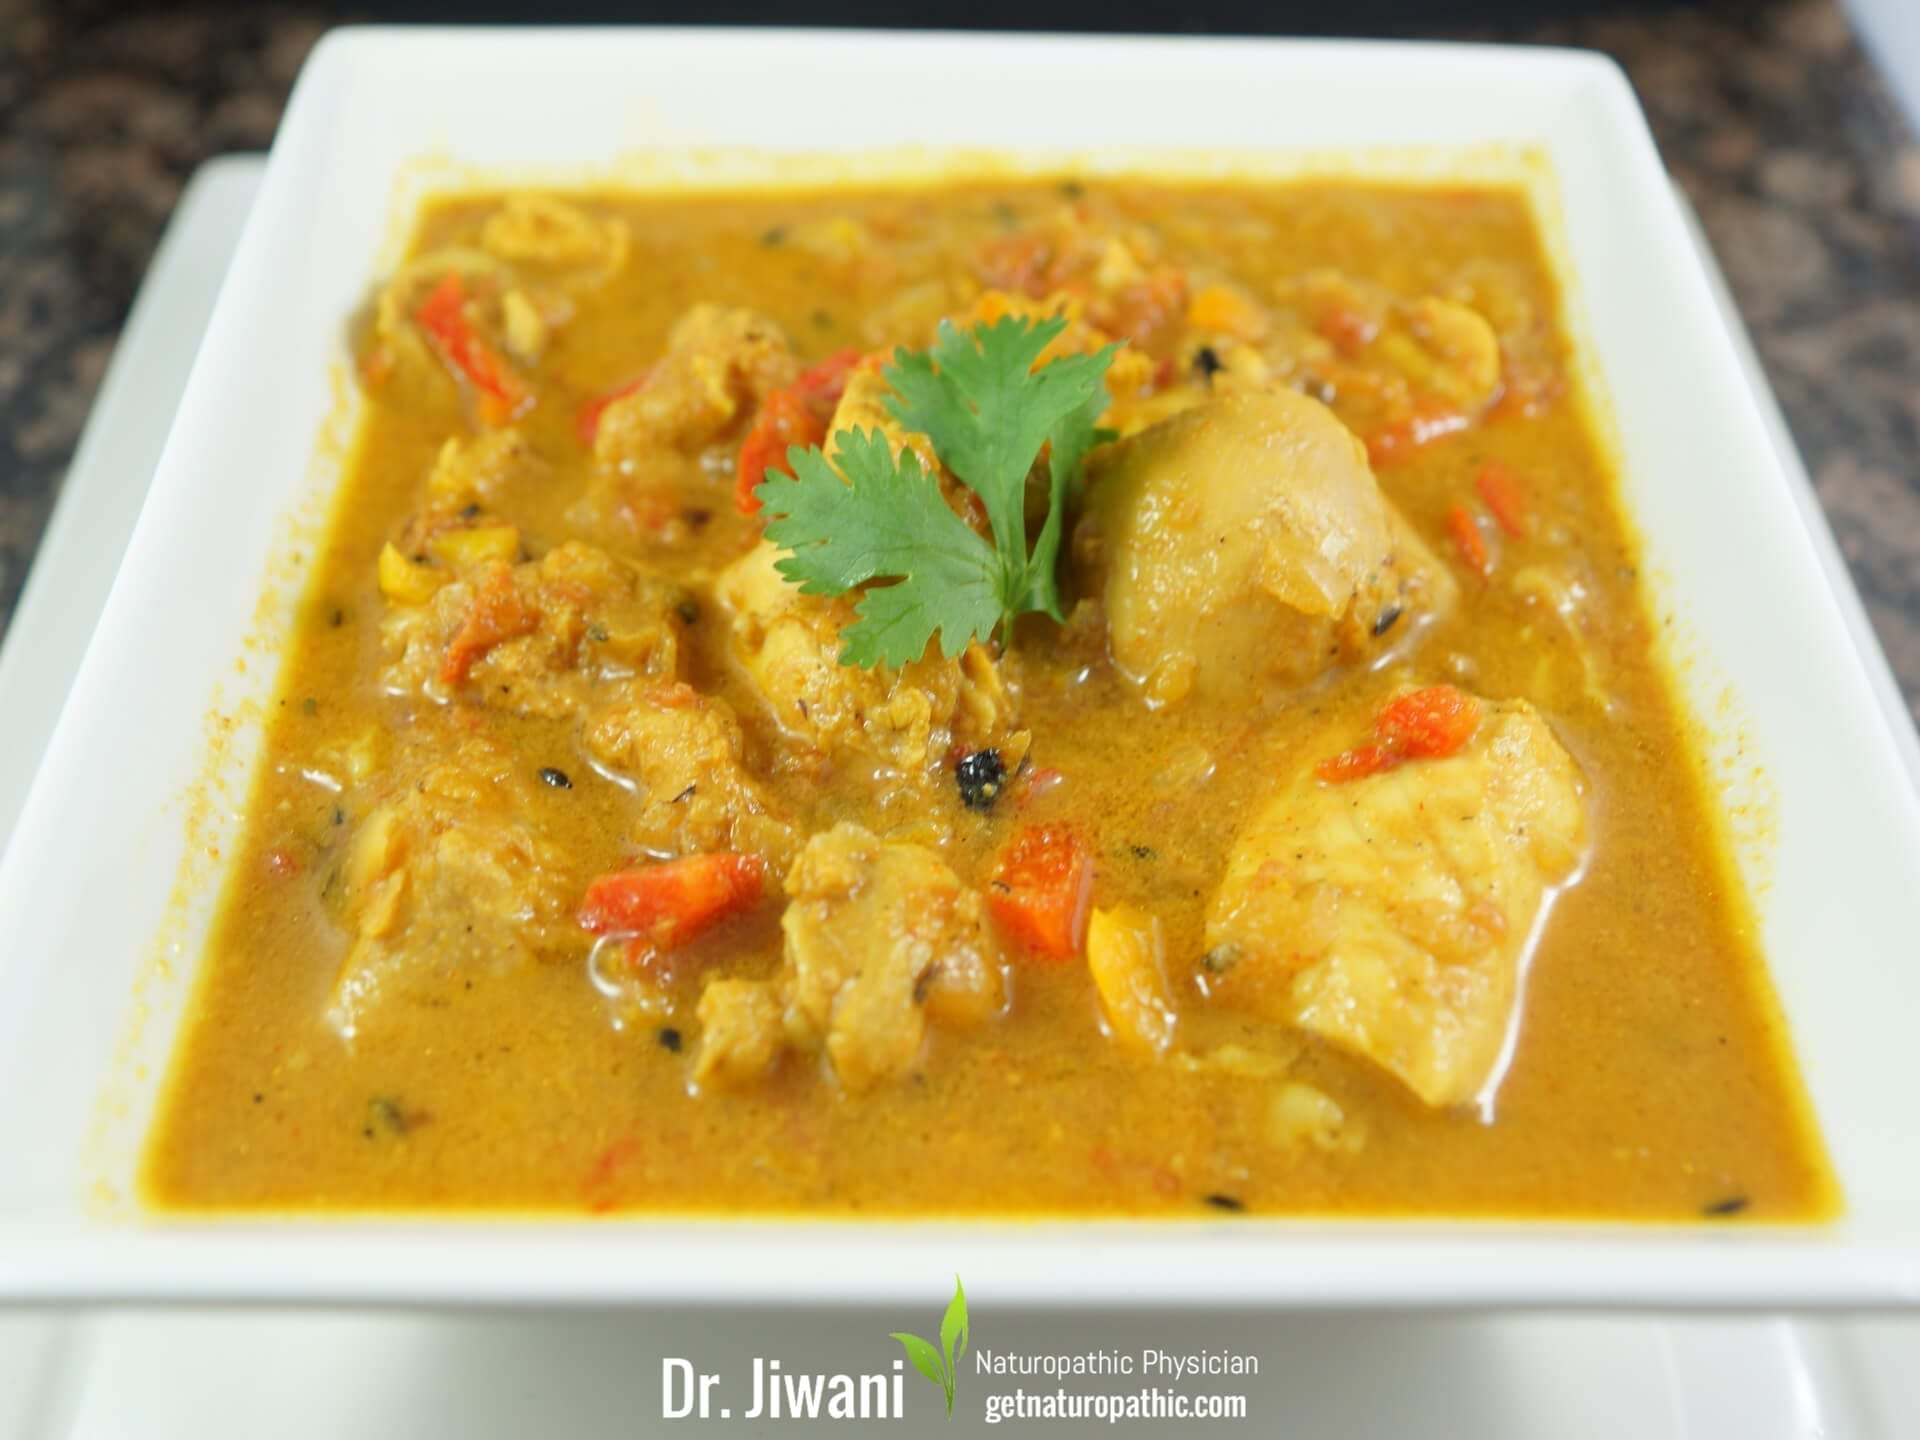 Dr. Jiwani's Classic Chicken Curry  (Low Carb Dairy-Free) Recipe: Gluten-Free, Grain-Free, Egg-Free, Dairy-Free, Corn-Free, Soy-Free, Sugar-Free, Ideal For Diabetic, Paleo, Keto & Candida Diets | Dr. Jiwani's Naturopathic Nuggets Blog